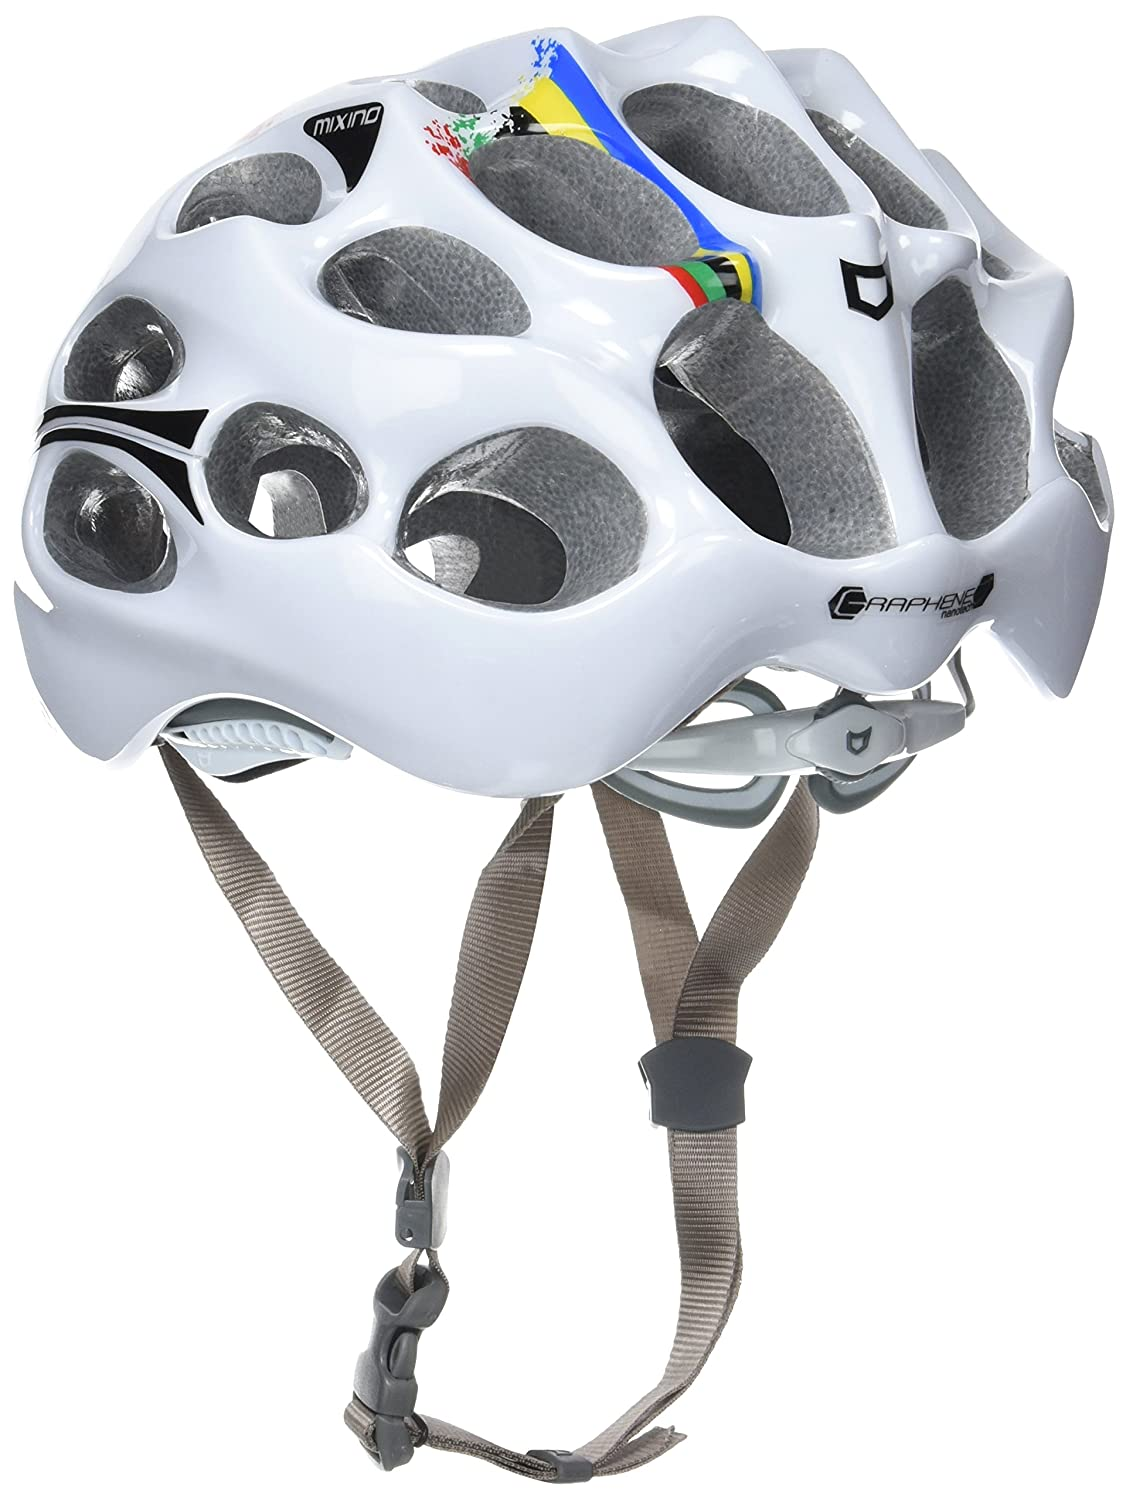 Amazon.com : Catlike Mixino World Champion Helmet 2016 : Sports & Outdoors